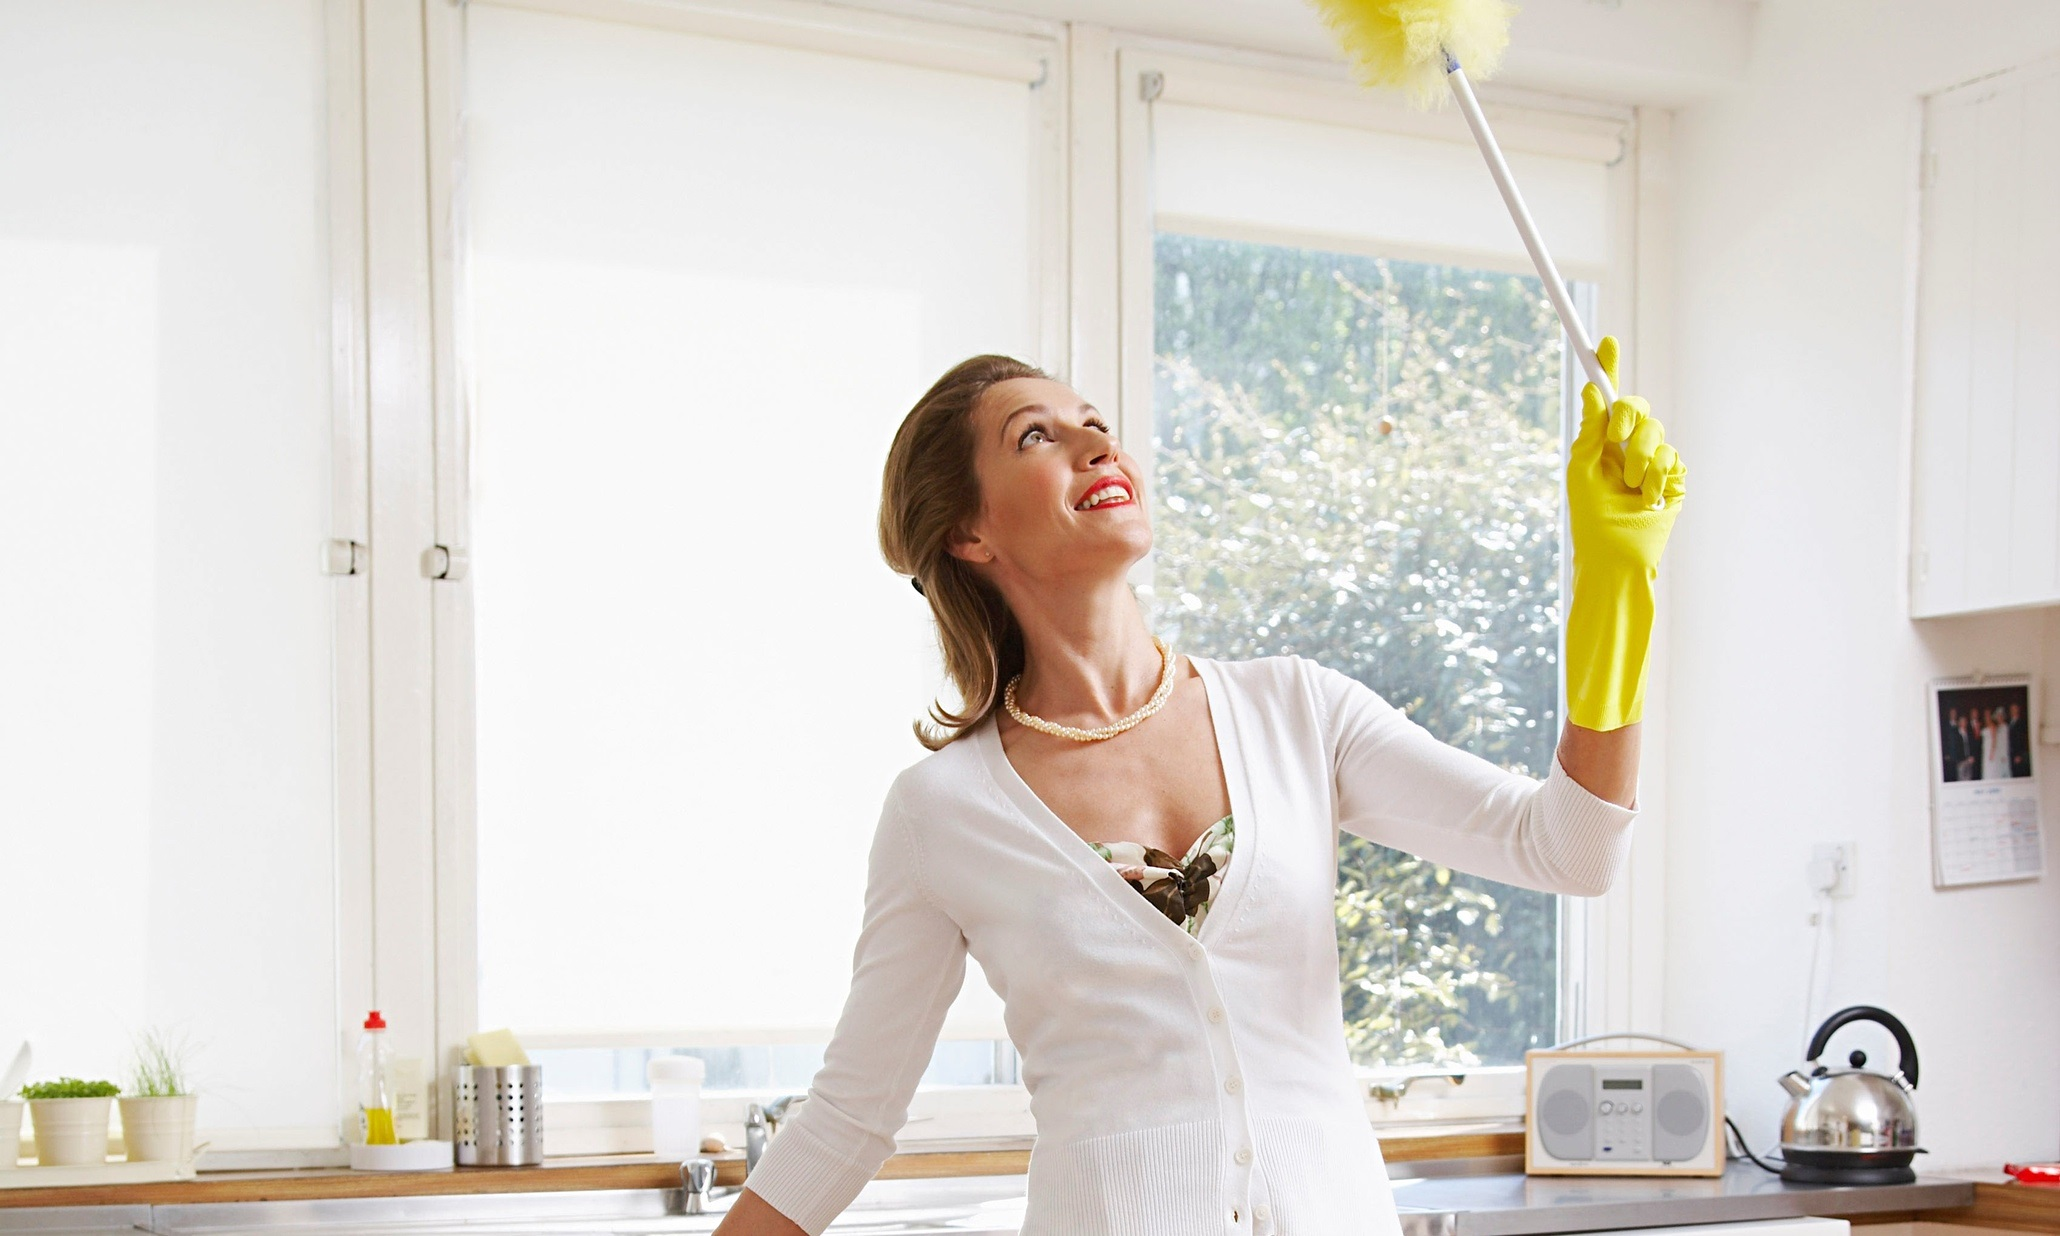 Woman dusting with gloves on, grinning, in a kitsch way